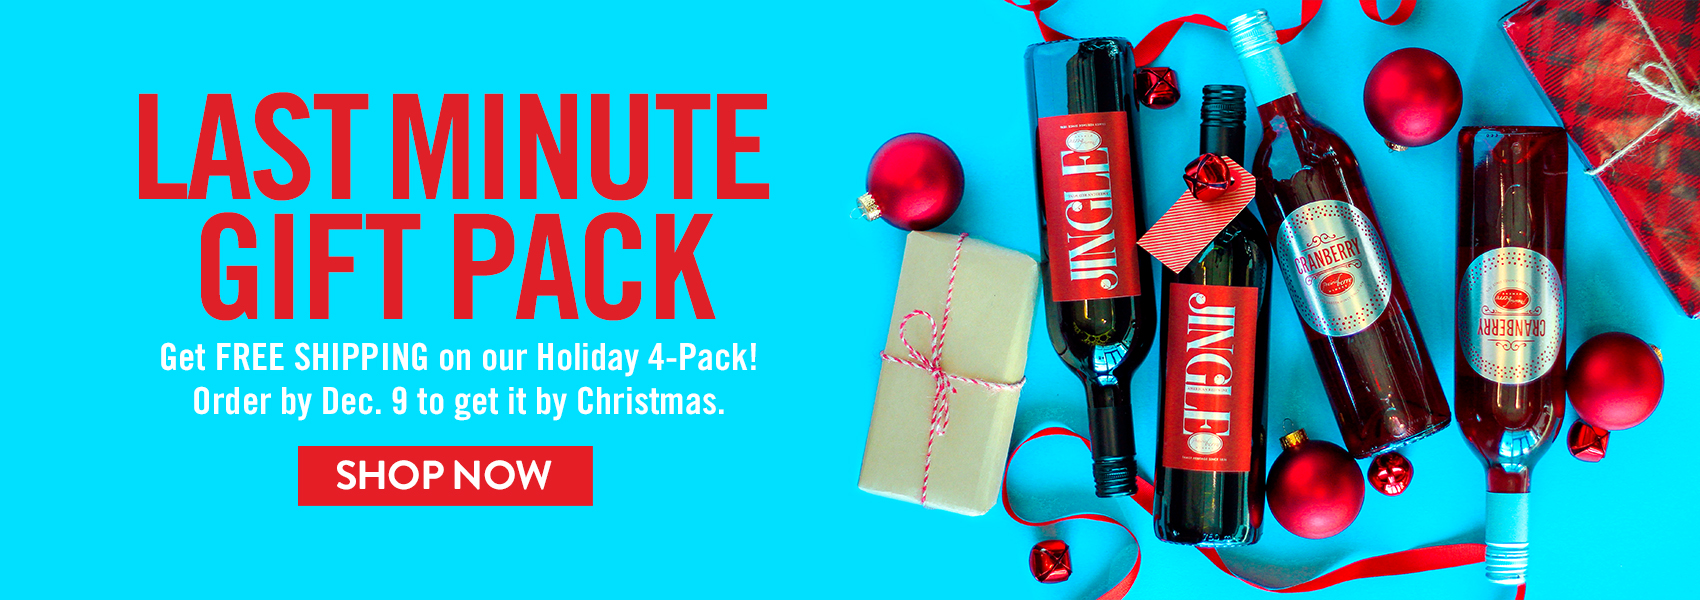 Get two bottles each of Jingle and Cranberry plus FREE shipping.